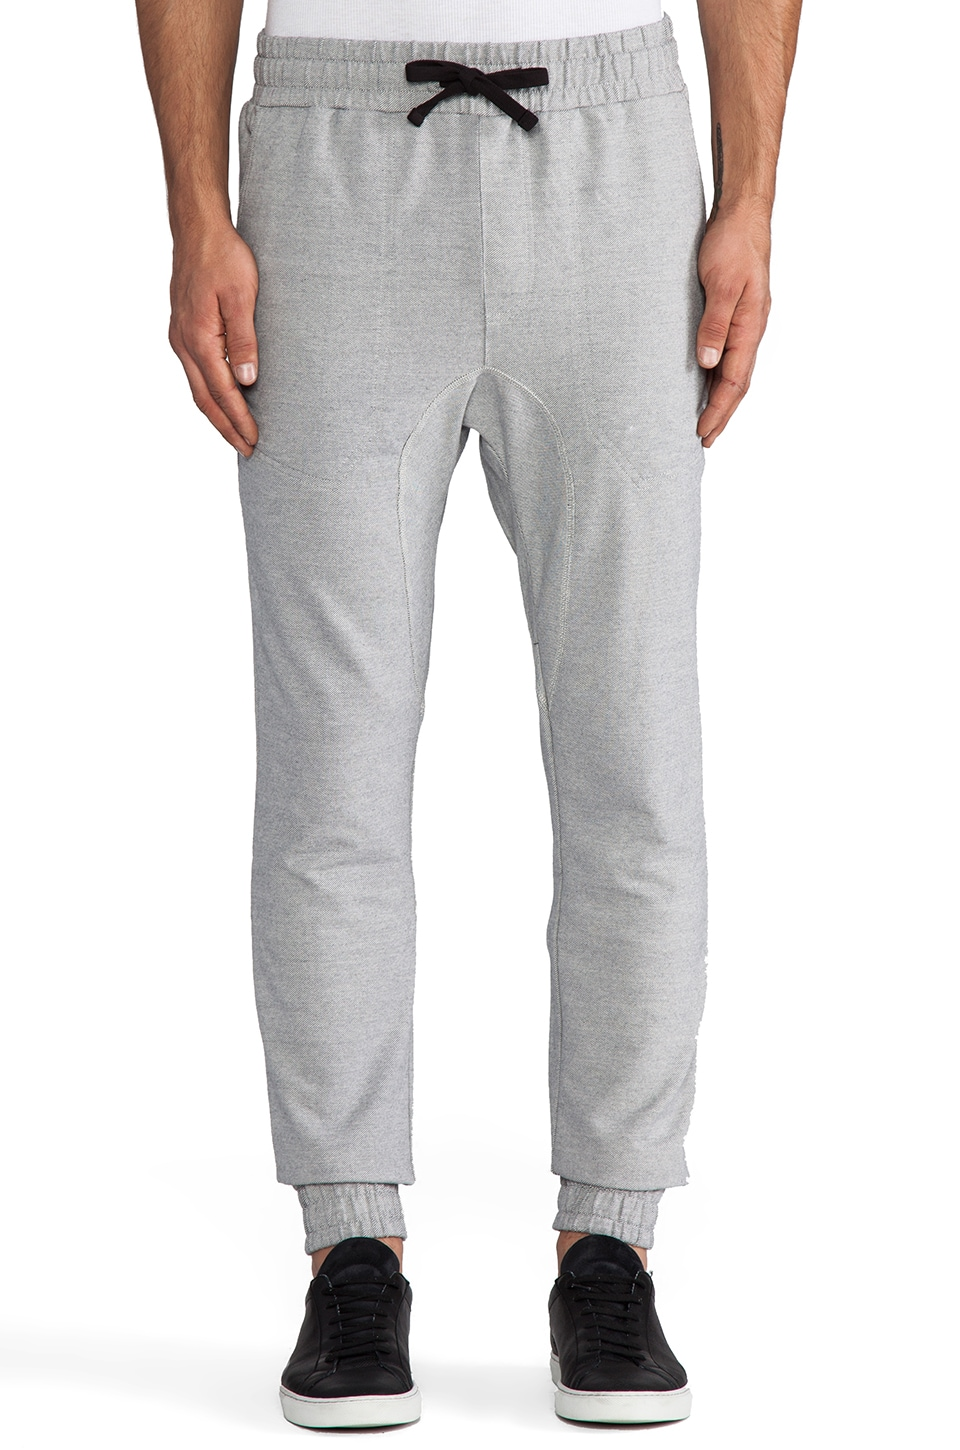 Zanerobe Slapshot Pant in Light Grey Marle